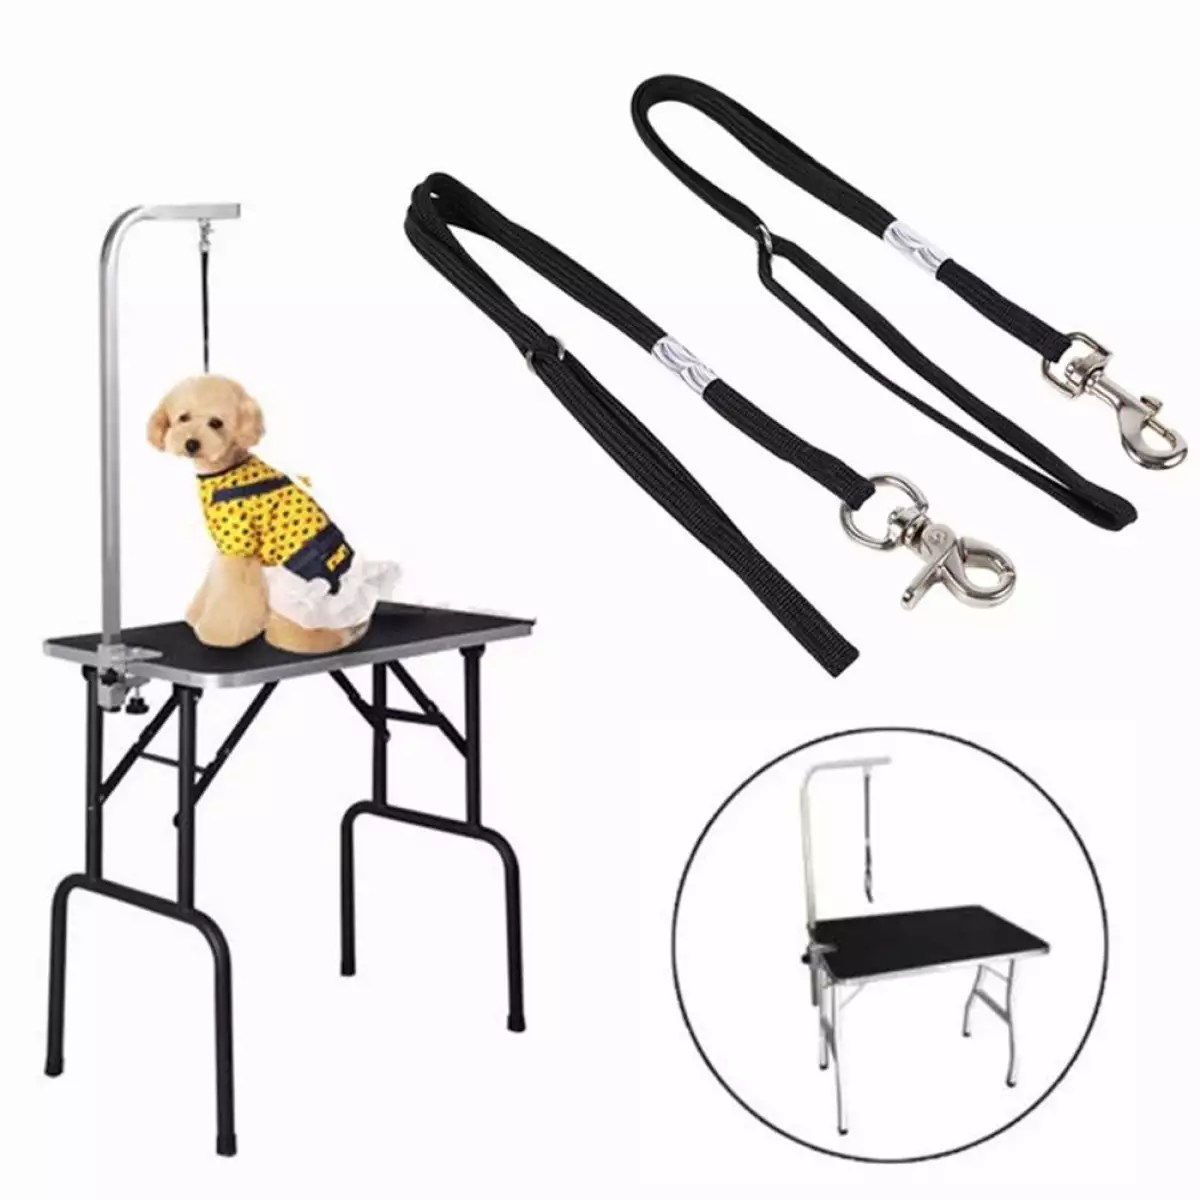 Beauty Table Stand Sling Traction Belt Beauty Table Lanyard Elevator Accessories Pet Supplies Adjustable Dog Cat Grooming Table Arm Bath Restraint Rope Harness Noose Loop Lazada